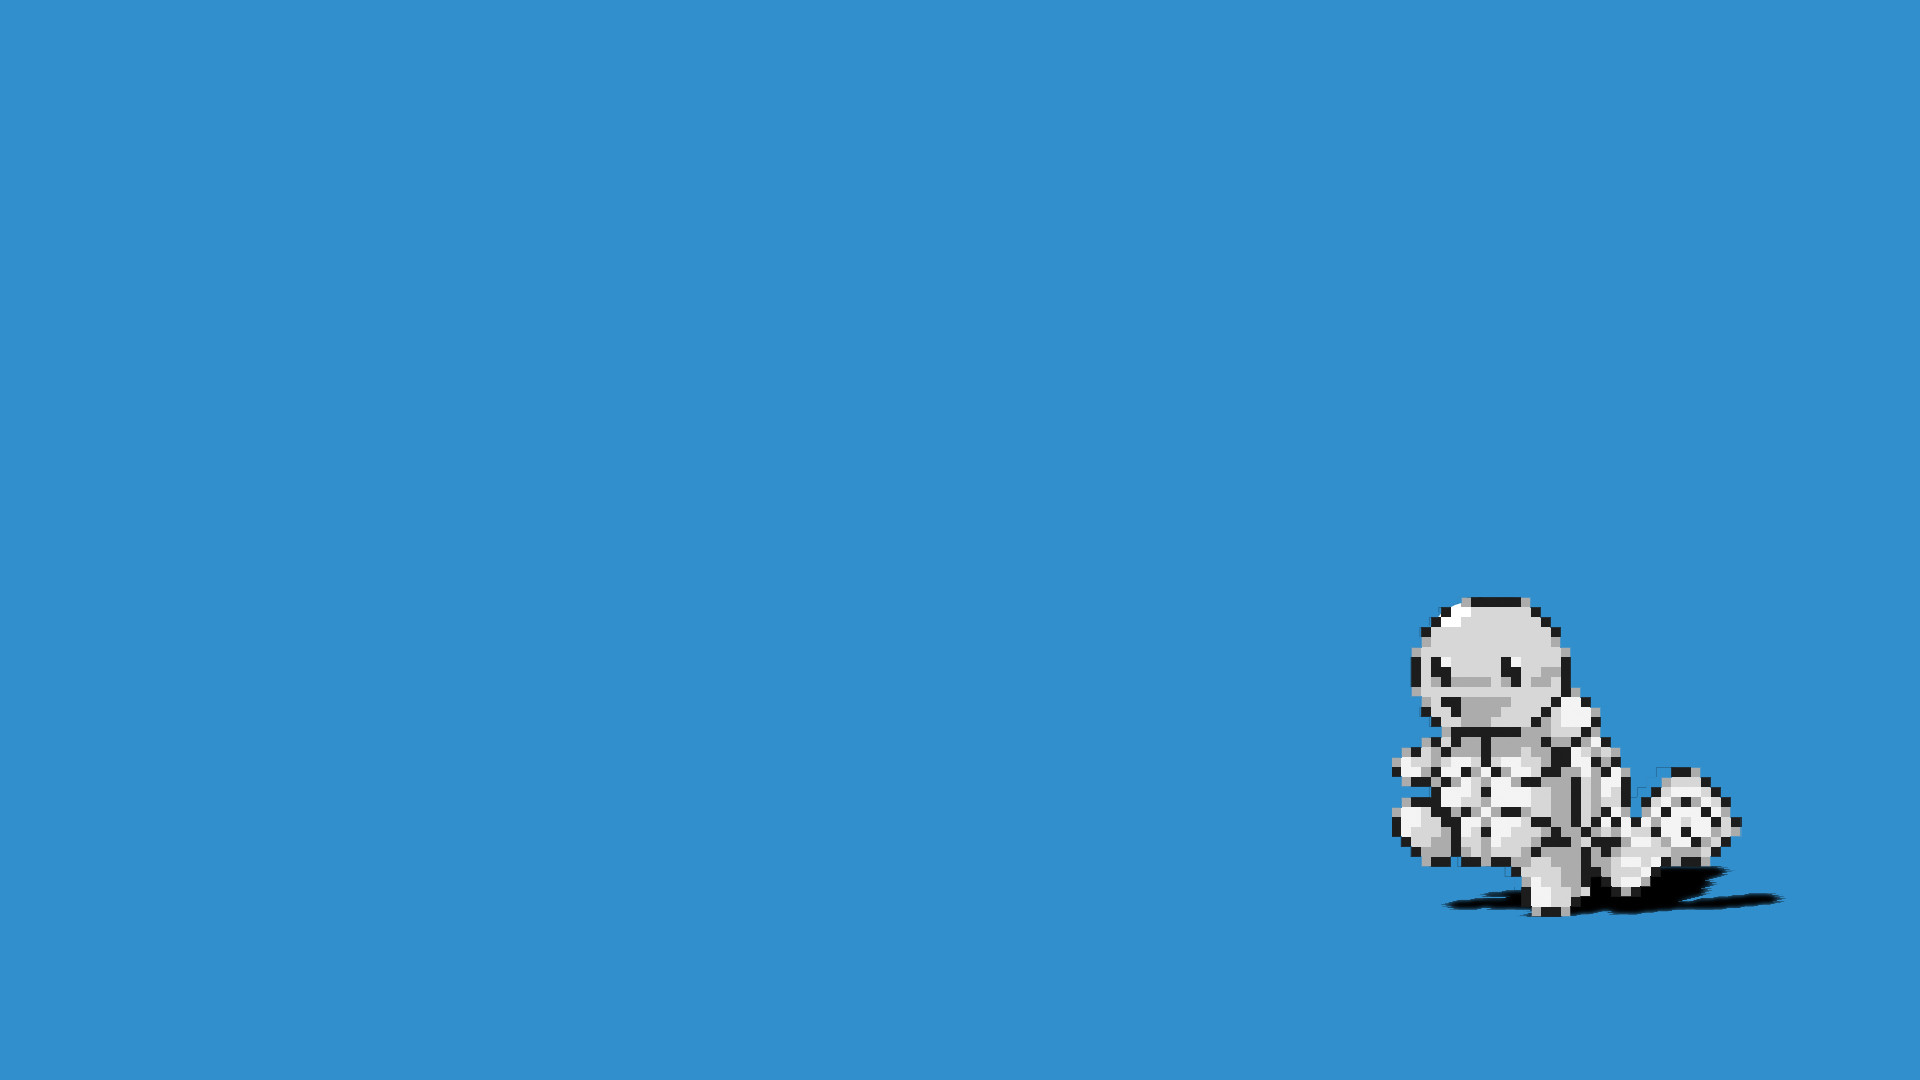 Image – Pokemon vintage squirtle old game blue hd-wallpaper-910663.jpg   Le  Miiverse Resource Wiki   FANDOM powered by Wikia